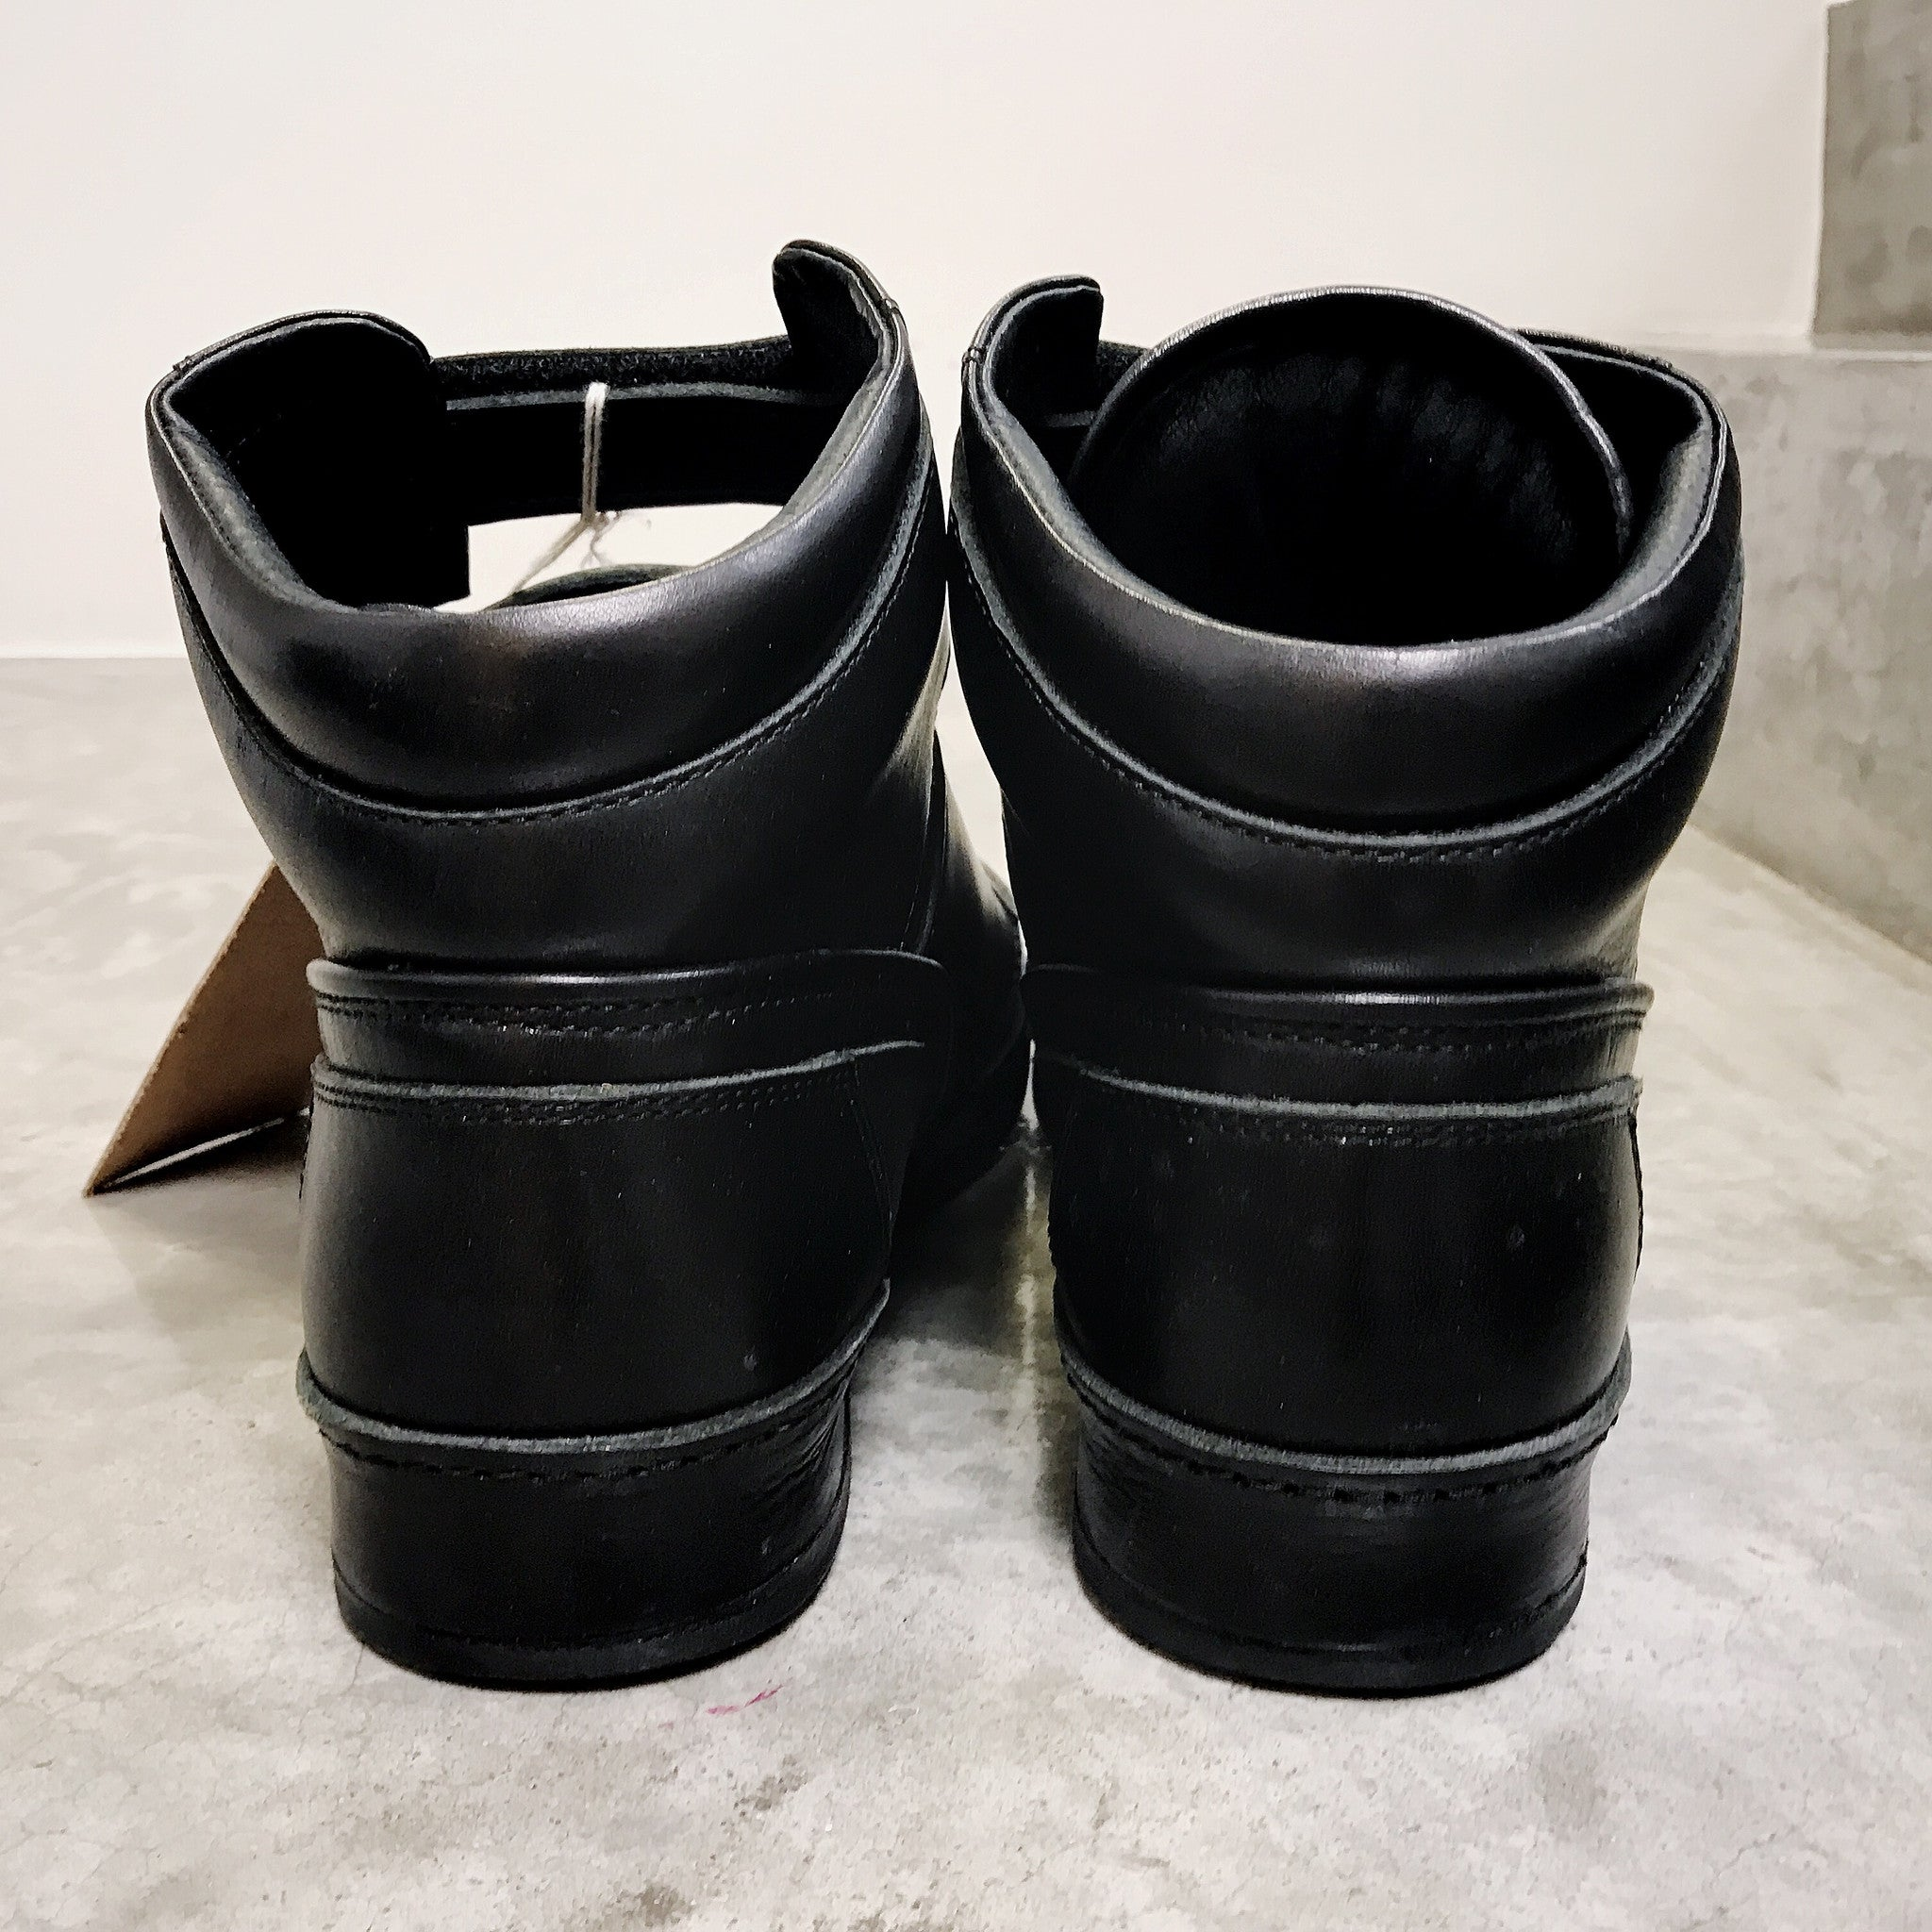 Hender Scheme Manual Industrial Products 06 - black